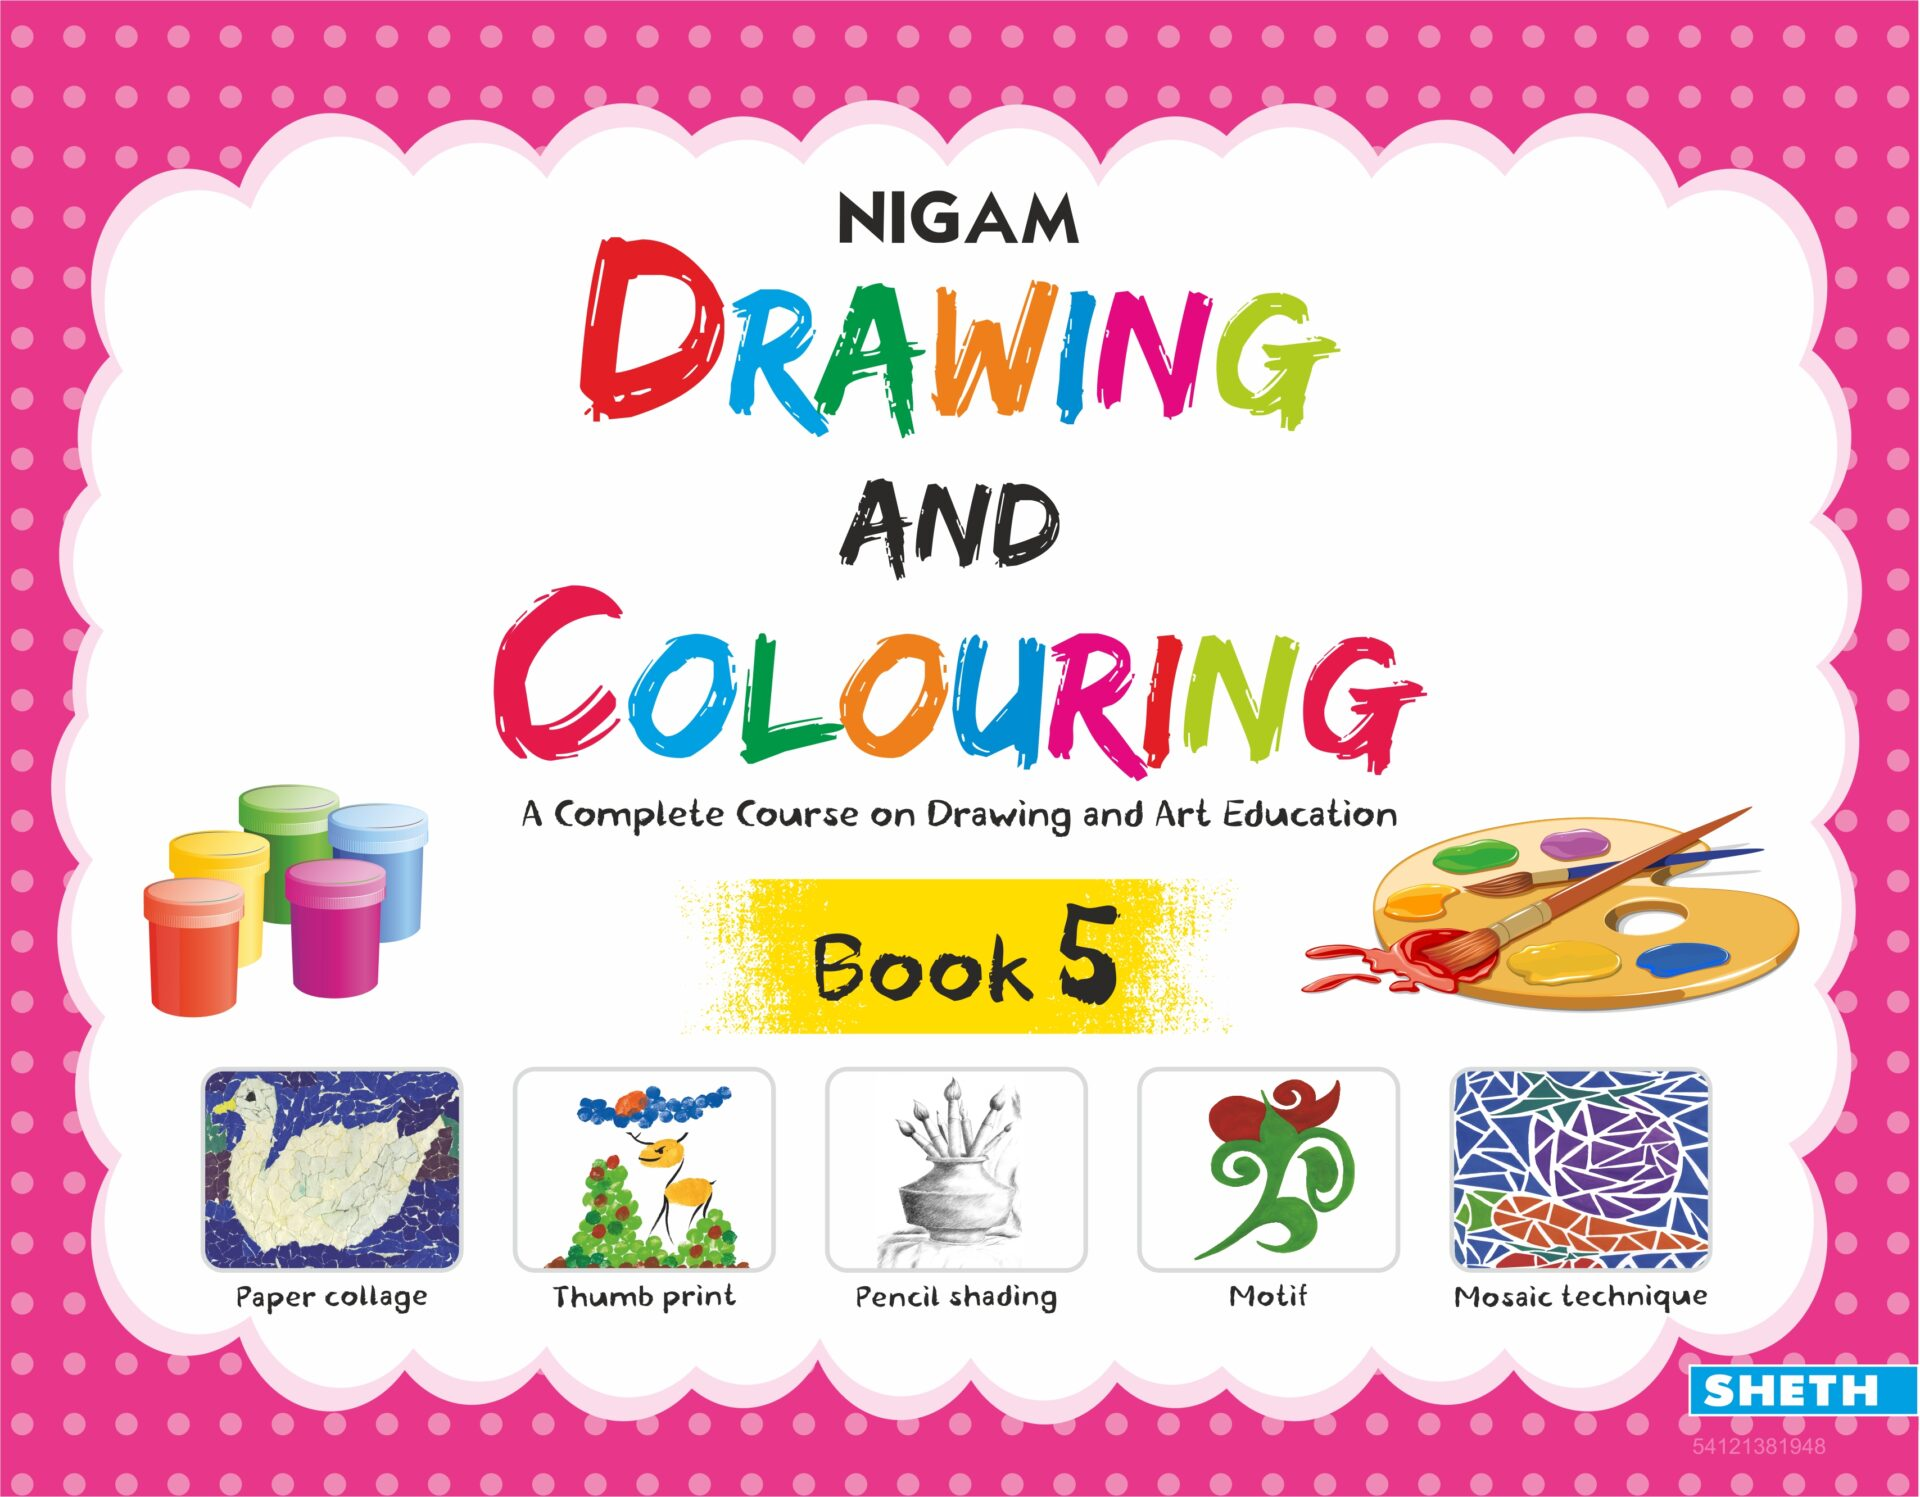 NIgam Drawing and Colouring Book 5 1